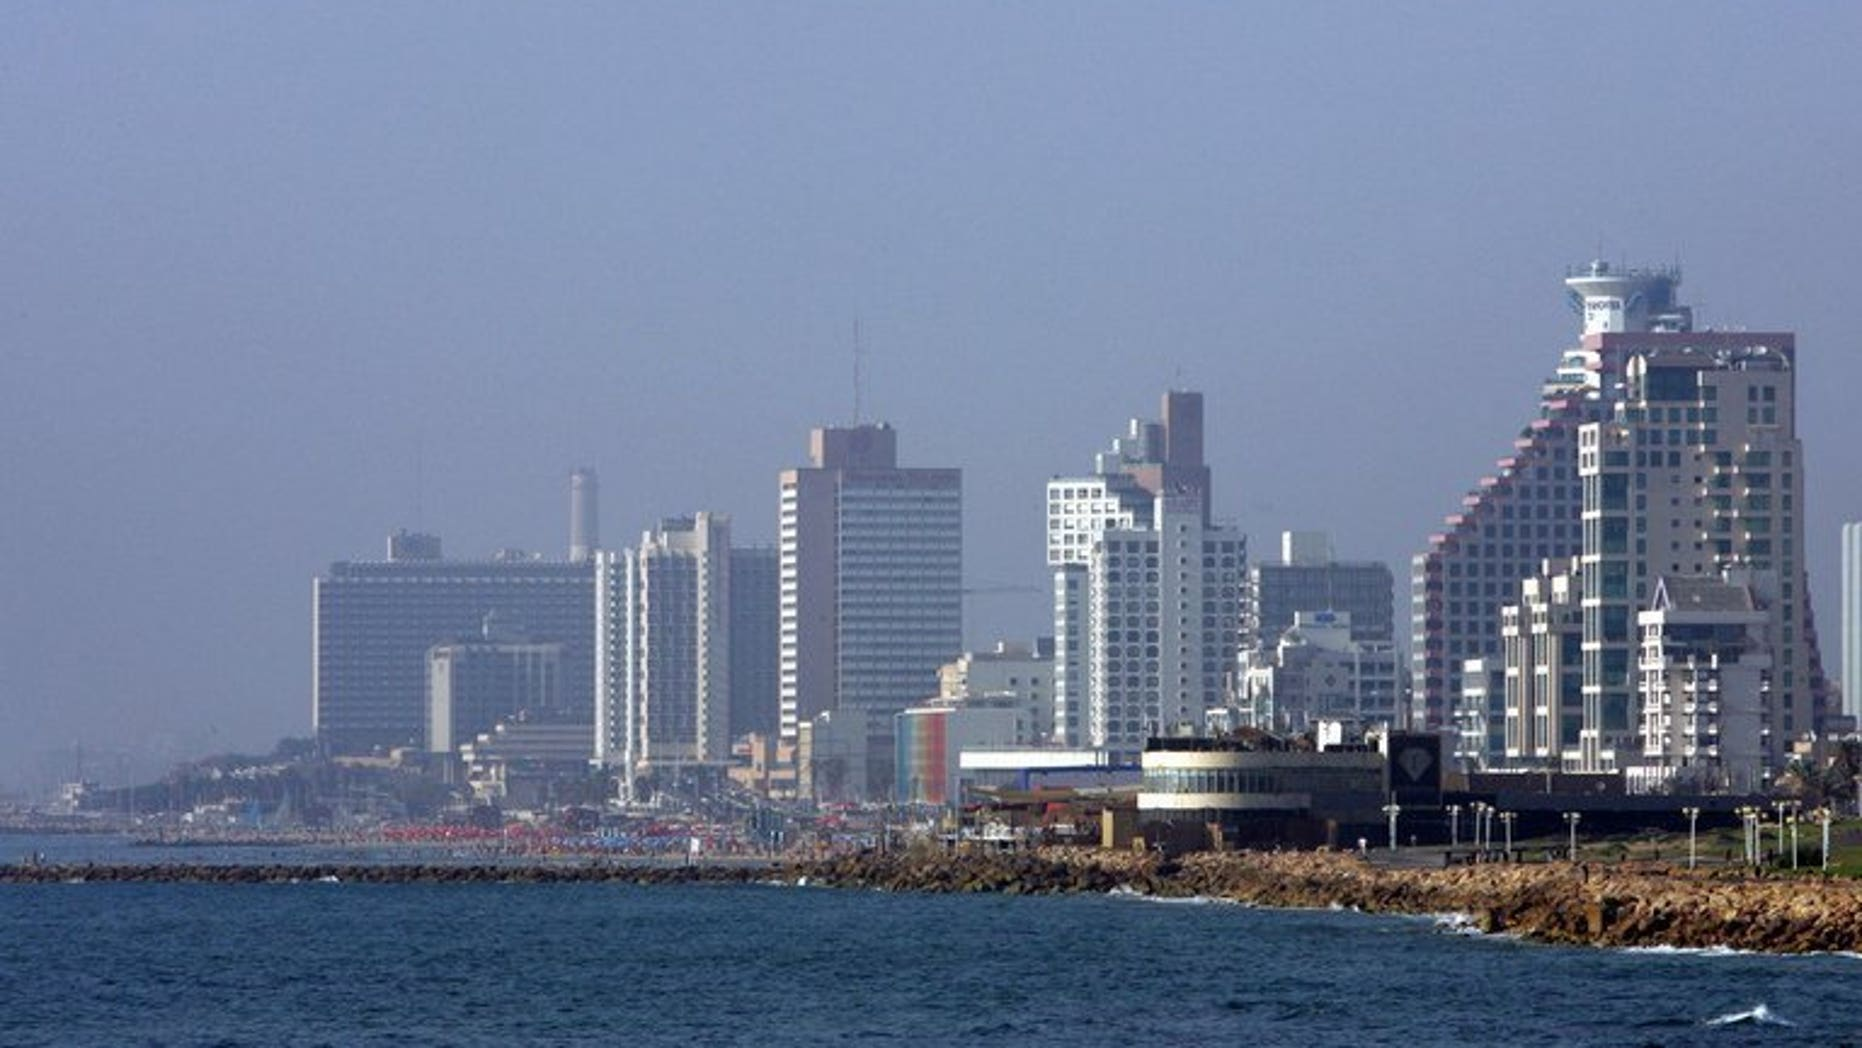 A portion of the skyline of the Israeli city of Tel Aviv, June 28, 2007. A new Israel-based 24-hour TV news channel broadcasting in English, French and Arabic is to go on air on July 1, its CEO says.